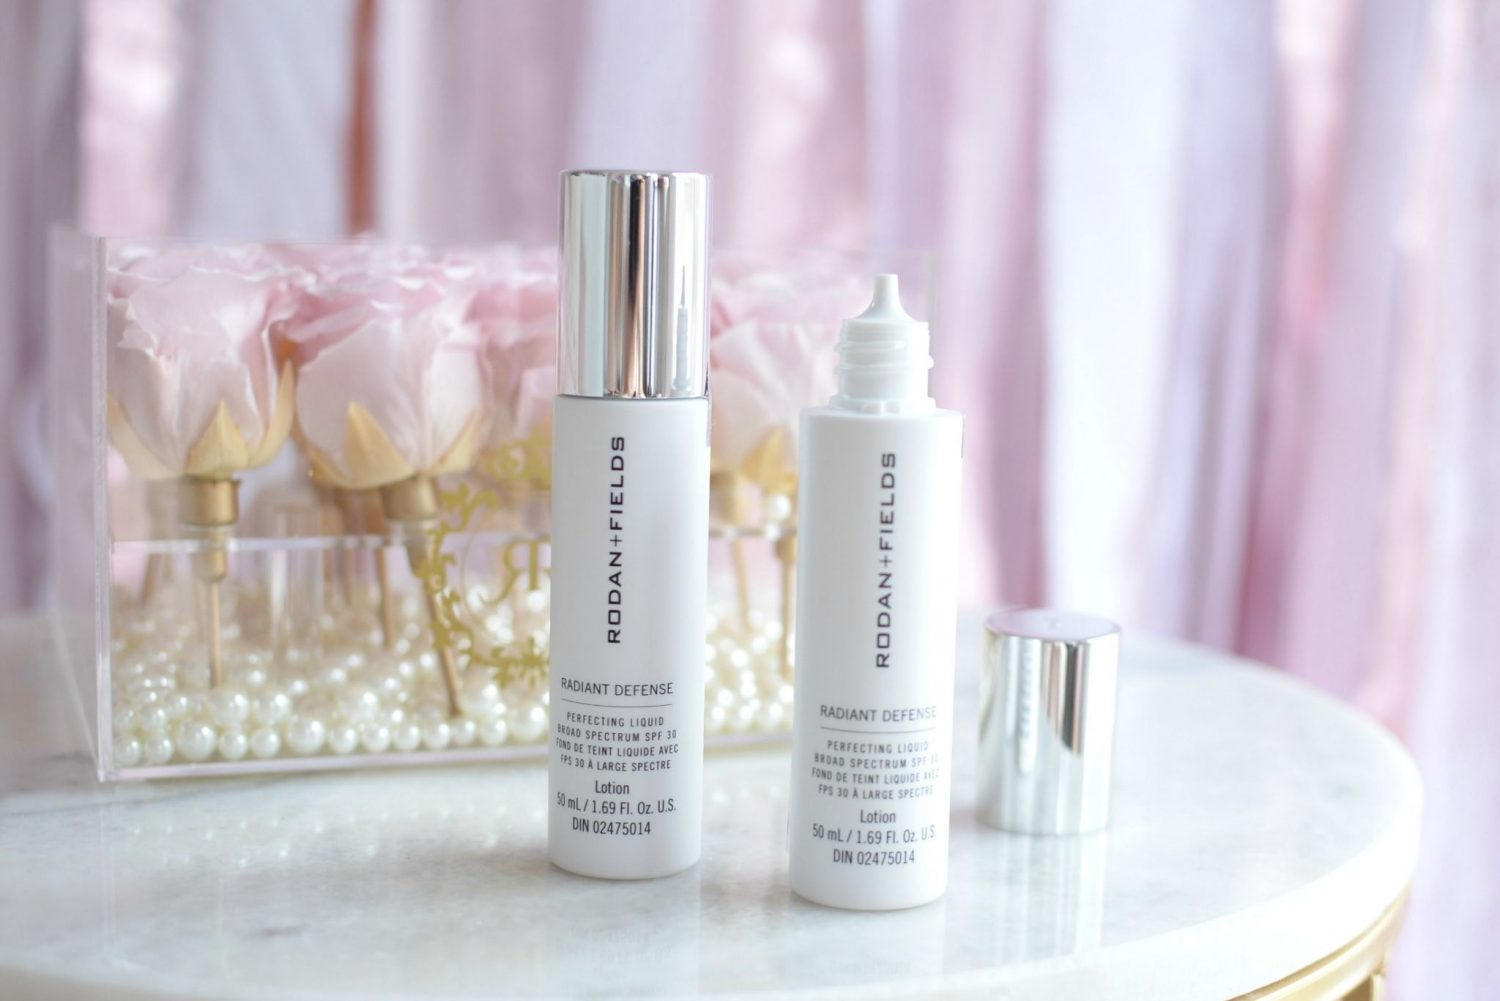 Radiant Defense Perfecting Liquid Broad Spectrum SPF 30